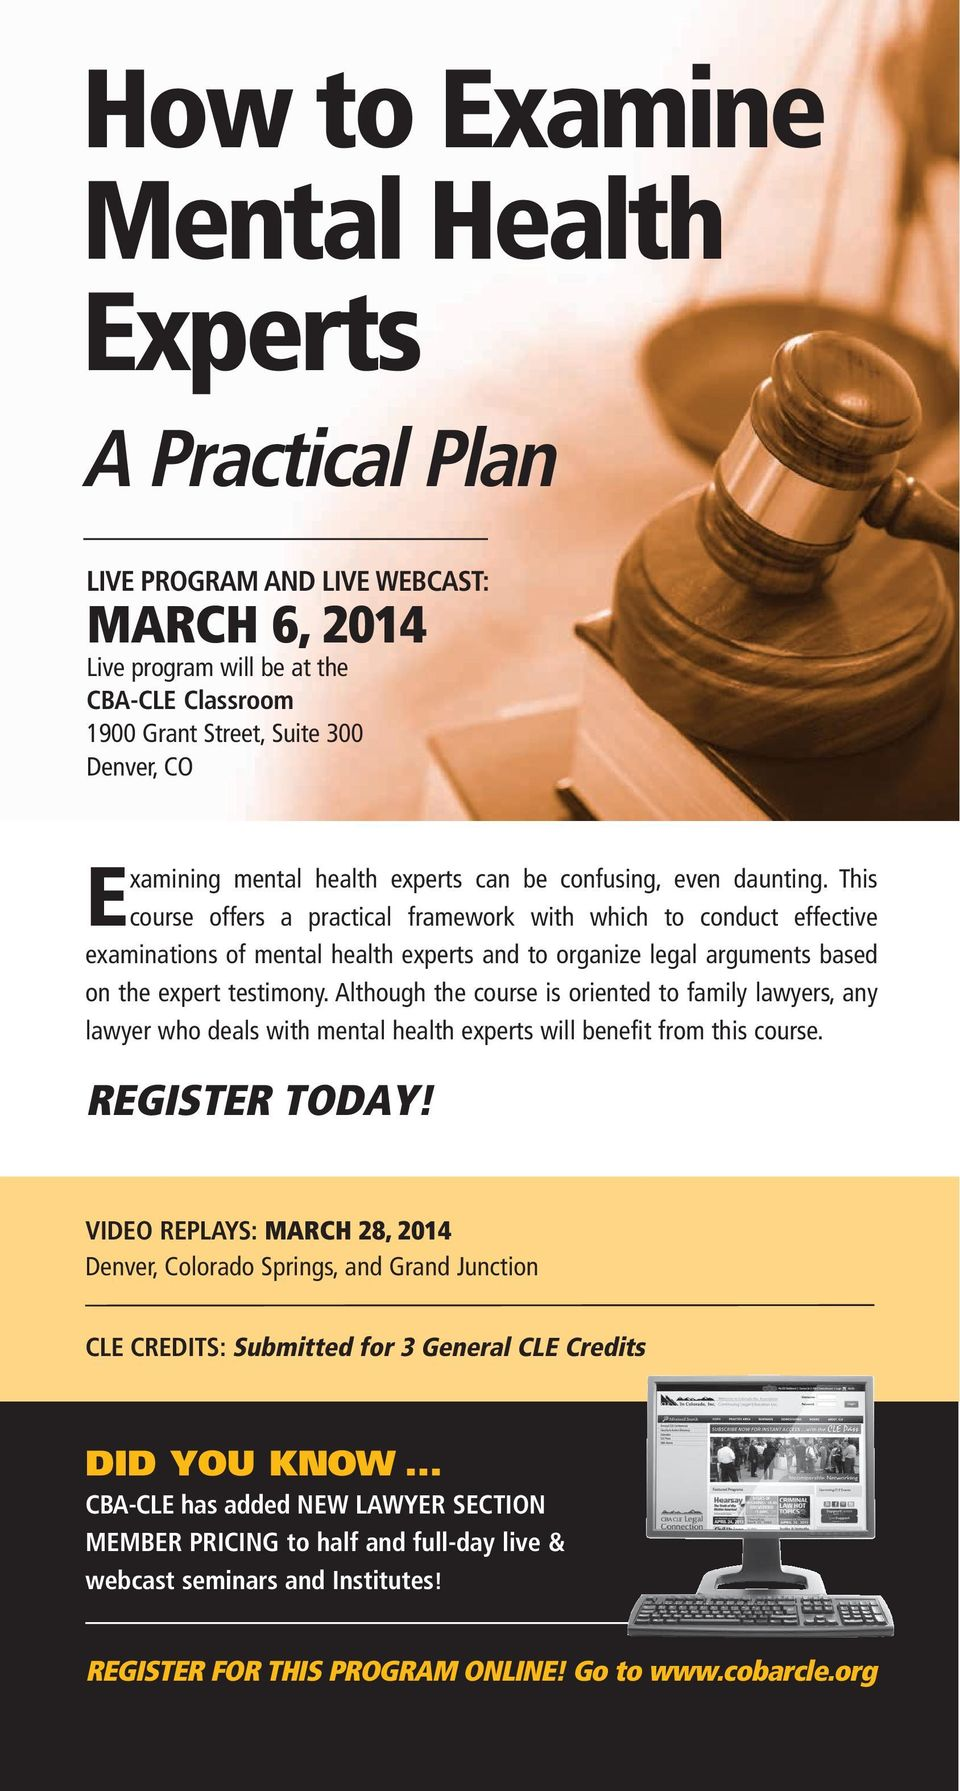 This course offers a practical framework with which to conduct effective examinations of mental health experts and to organize legal arguments based on the expert testimony.